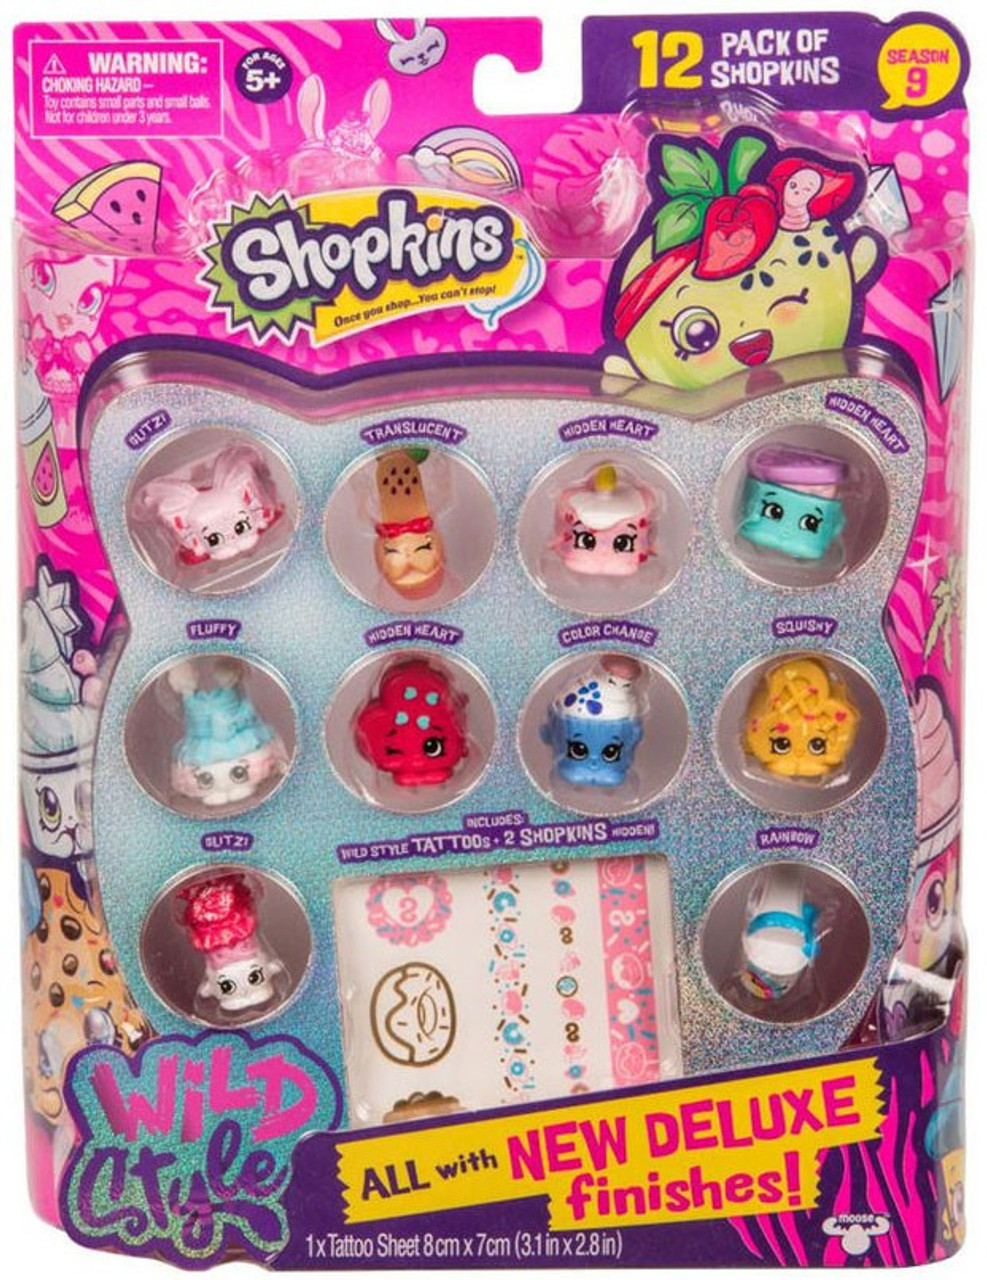 Shopkins Chef Club Deluxe Pack-Juicy smoothie Collection